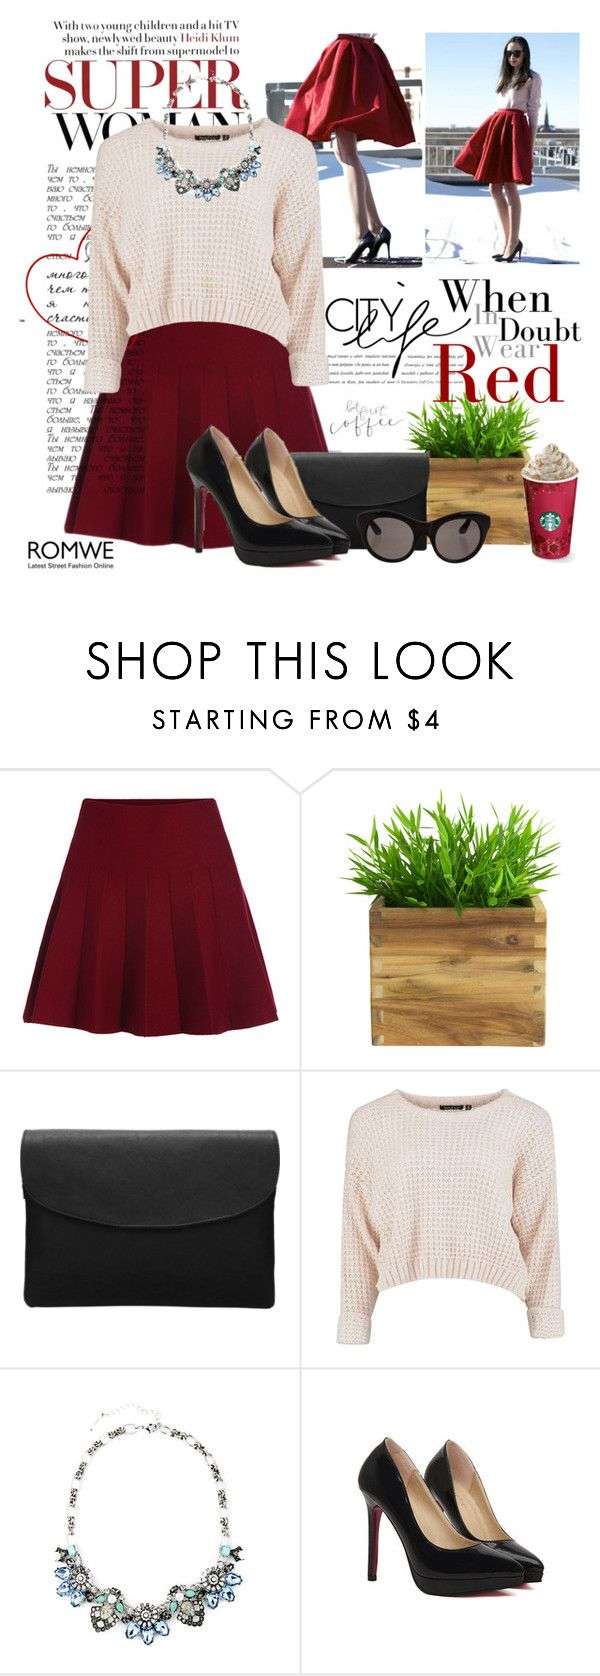 """""""Flare"""" by bmaroso ❤ liked on Polyvore featuring Black Rivet, Elizabeth and James, women's clothing, women, female, woman, misses, juniors, GetTheLook and romwe"""